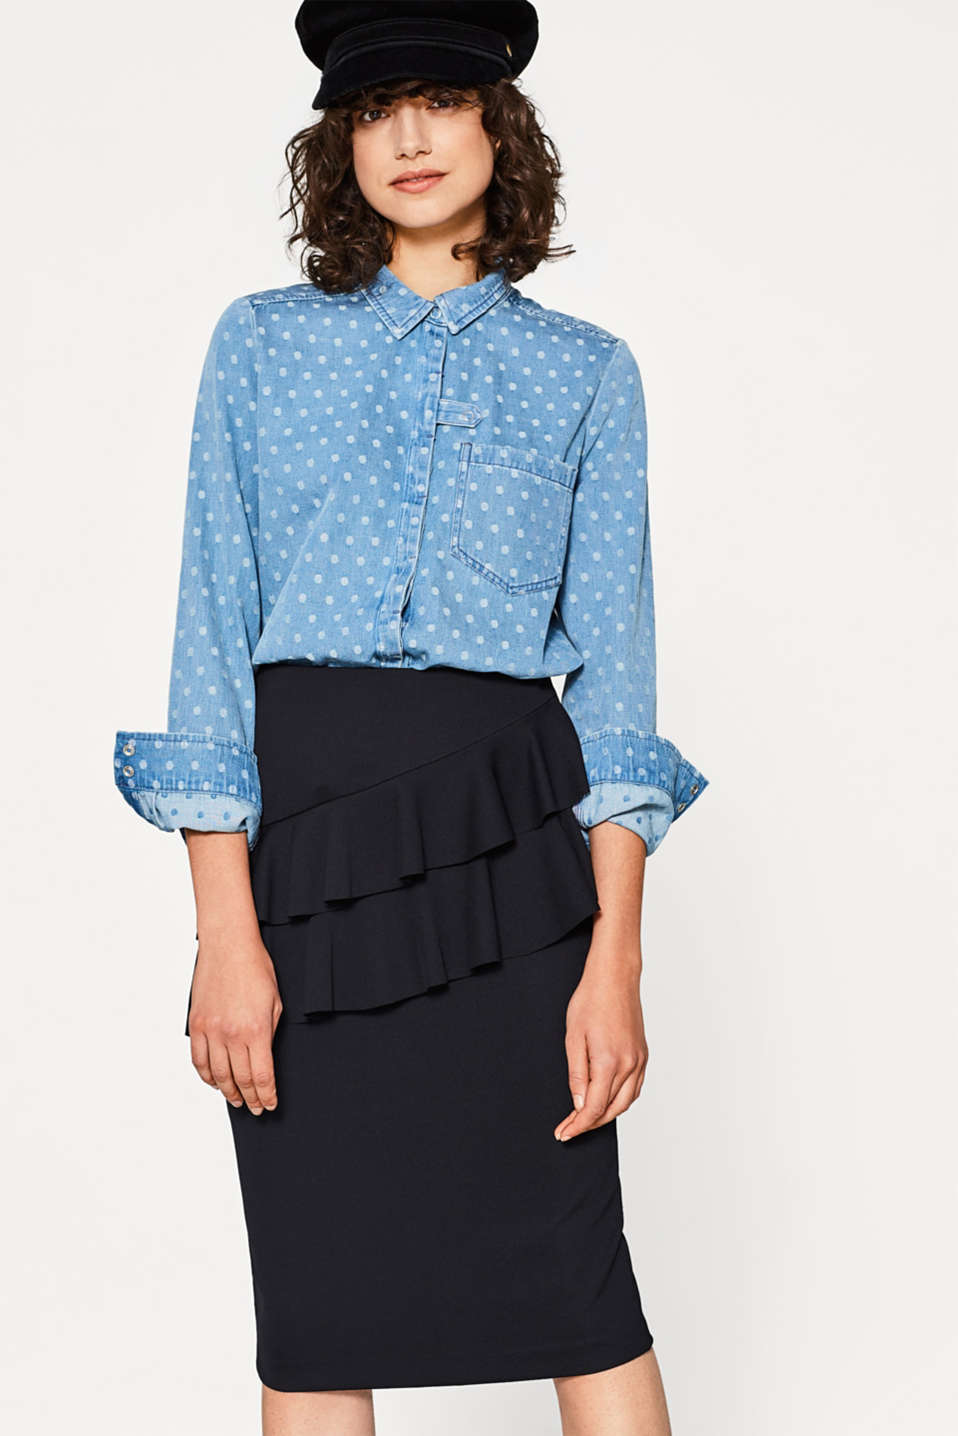 edc - Blusa in jeans a pois, cotone